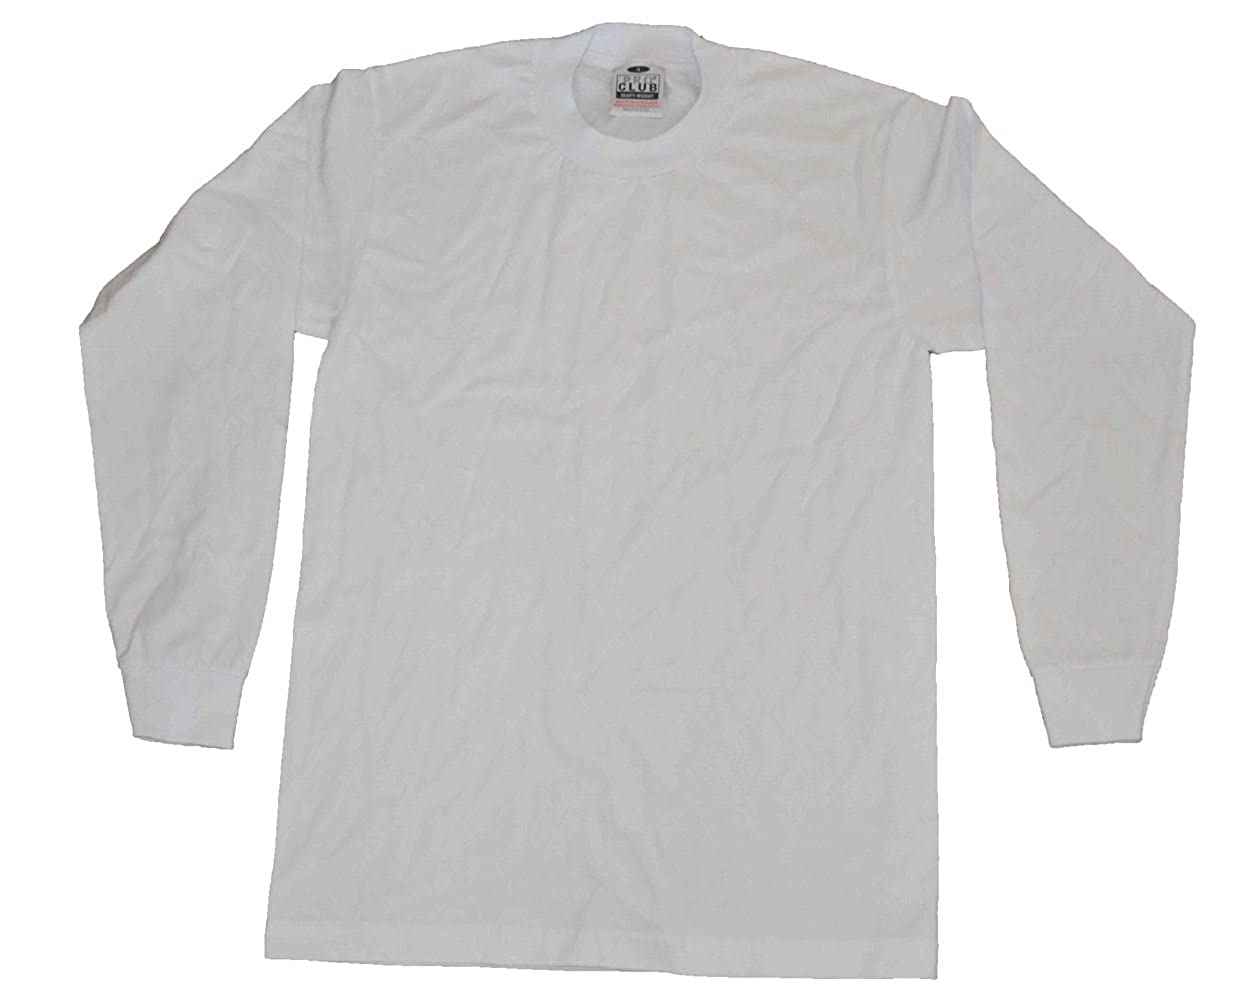 978d61123 Amazon.com: Pro Club Men's Pack of 6 Heavyweight Cotton Long Sleeve T-shirt  7xlarge (White): Clothing